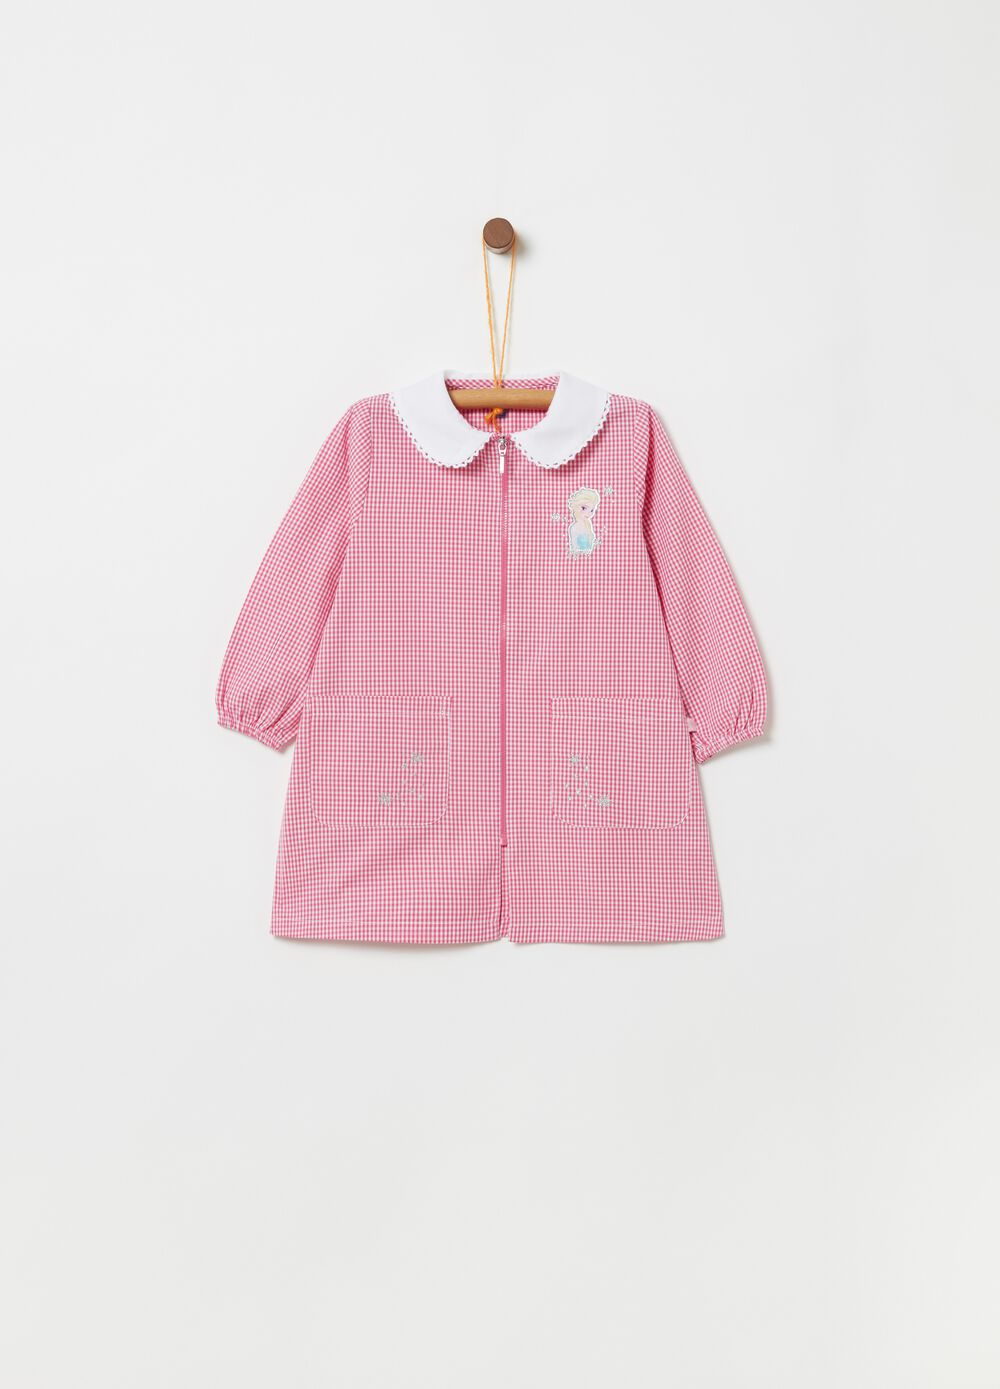 Checked school smock with zip fastening